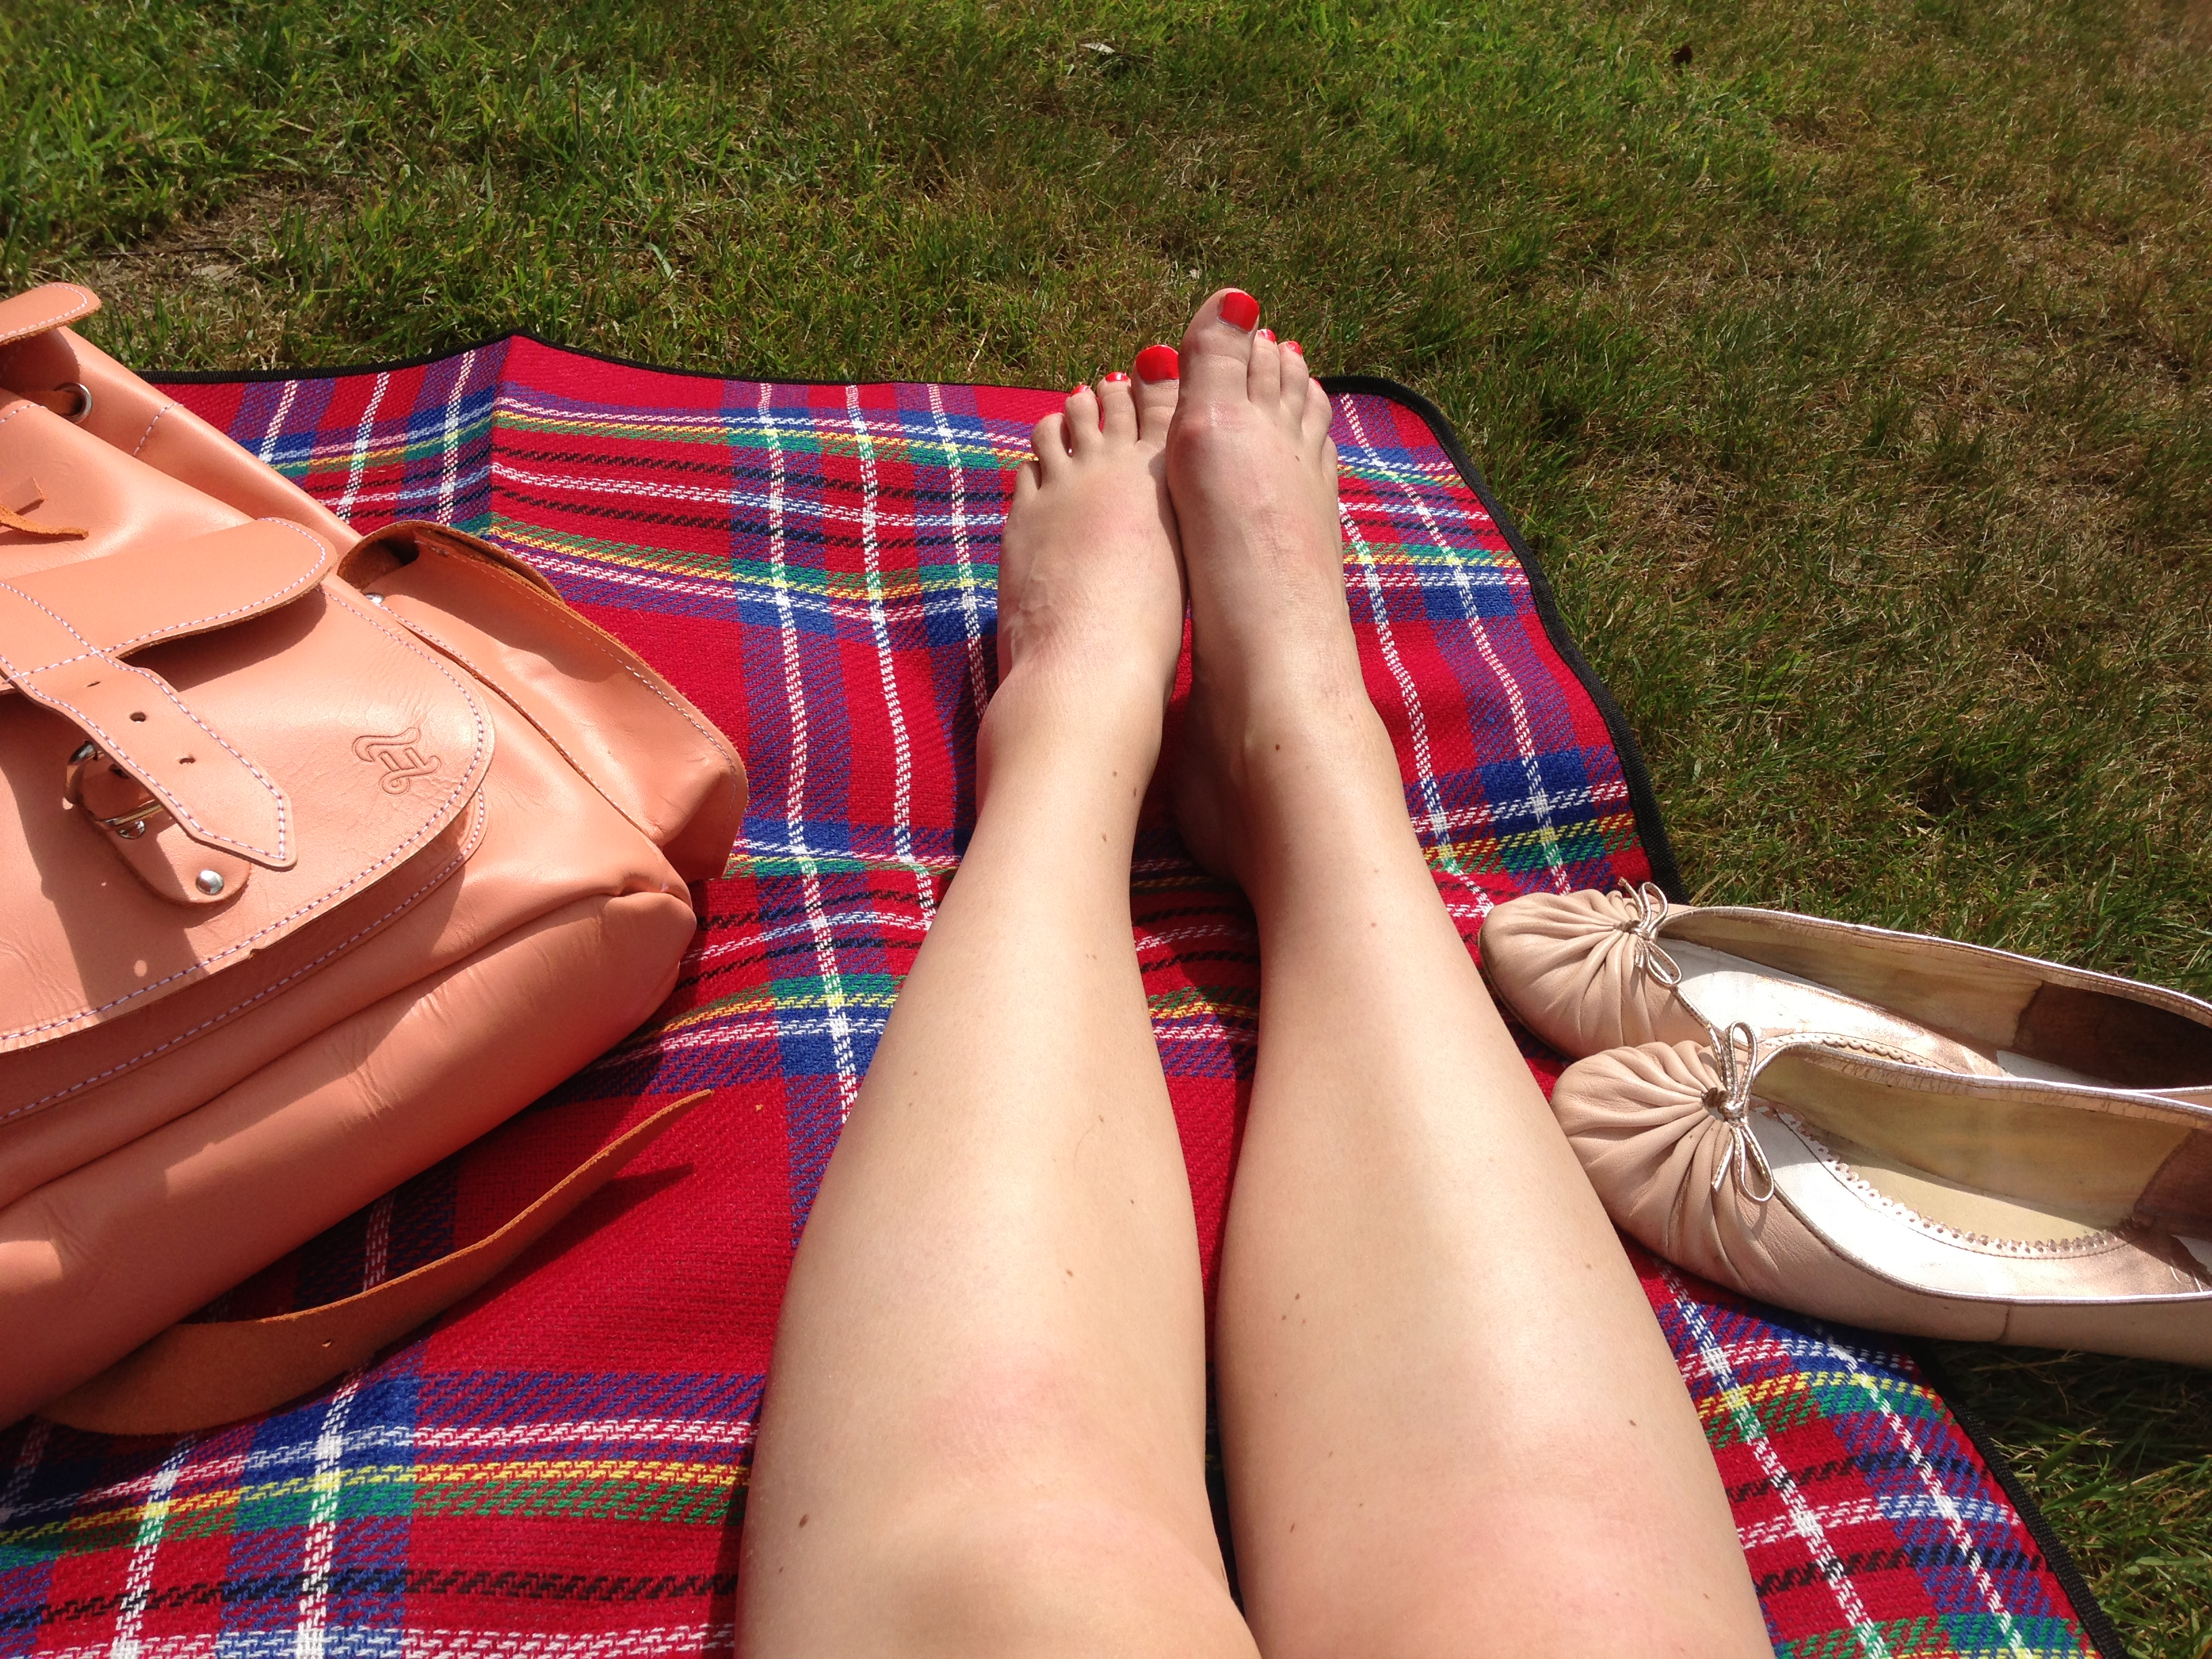 Sunny day picnic